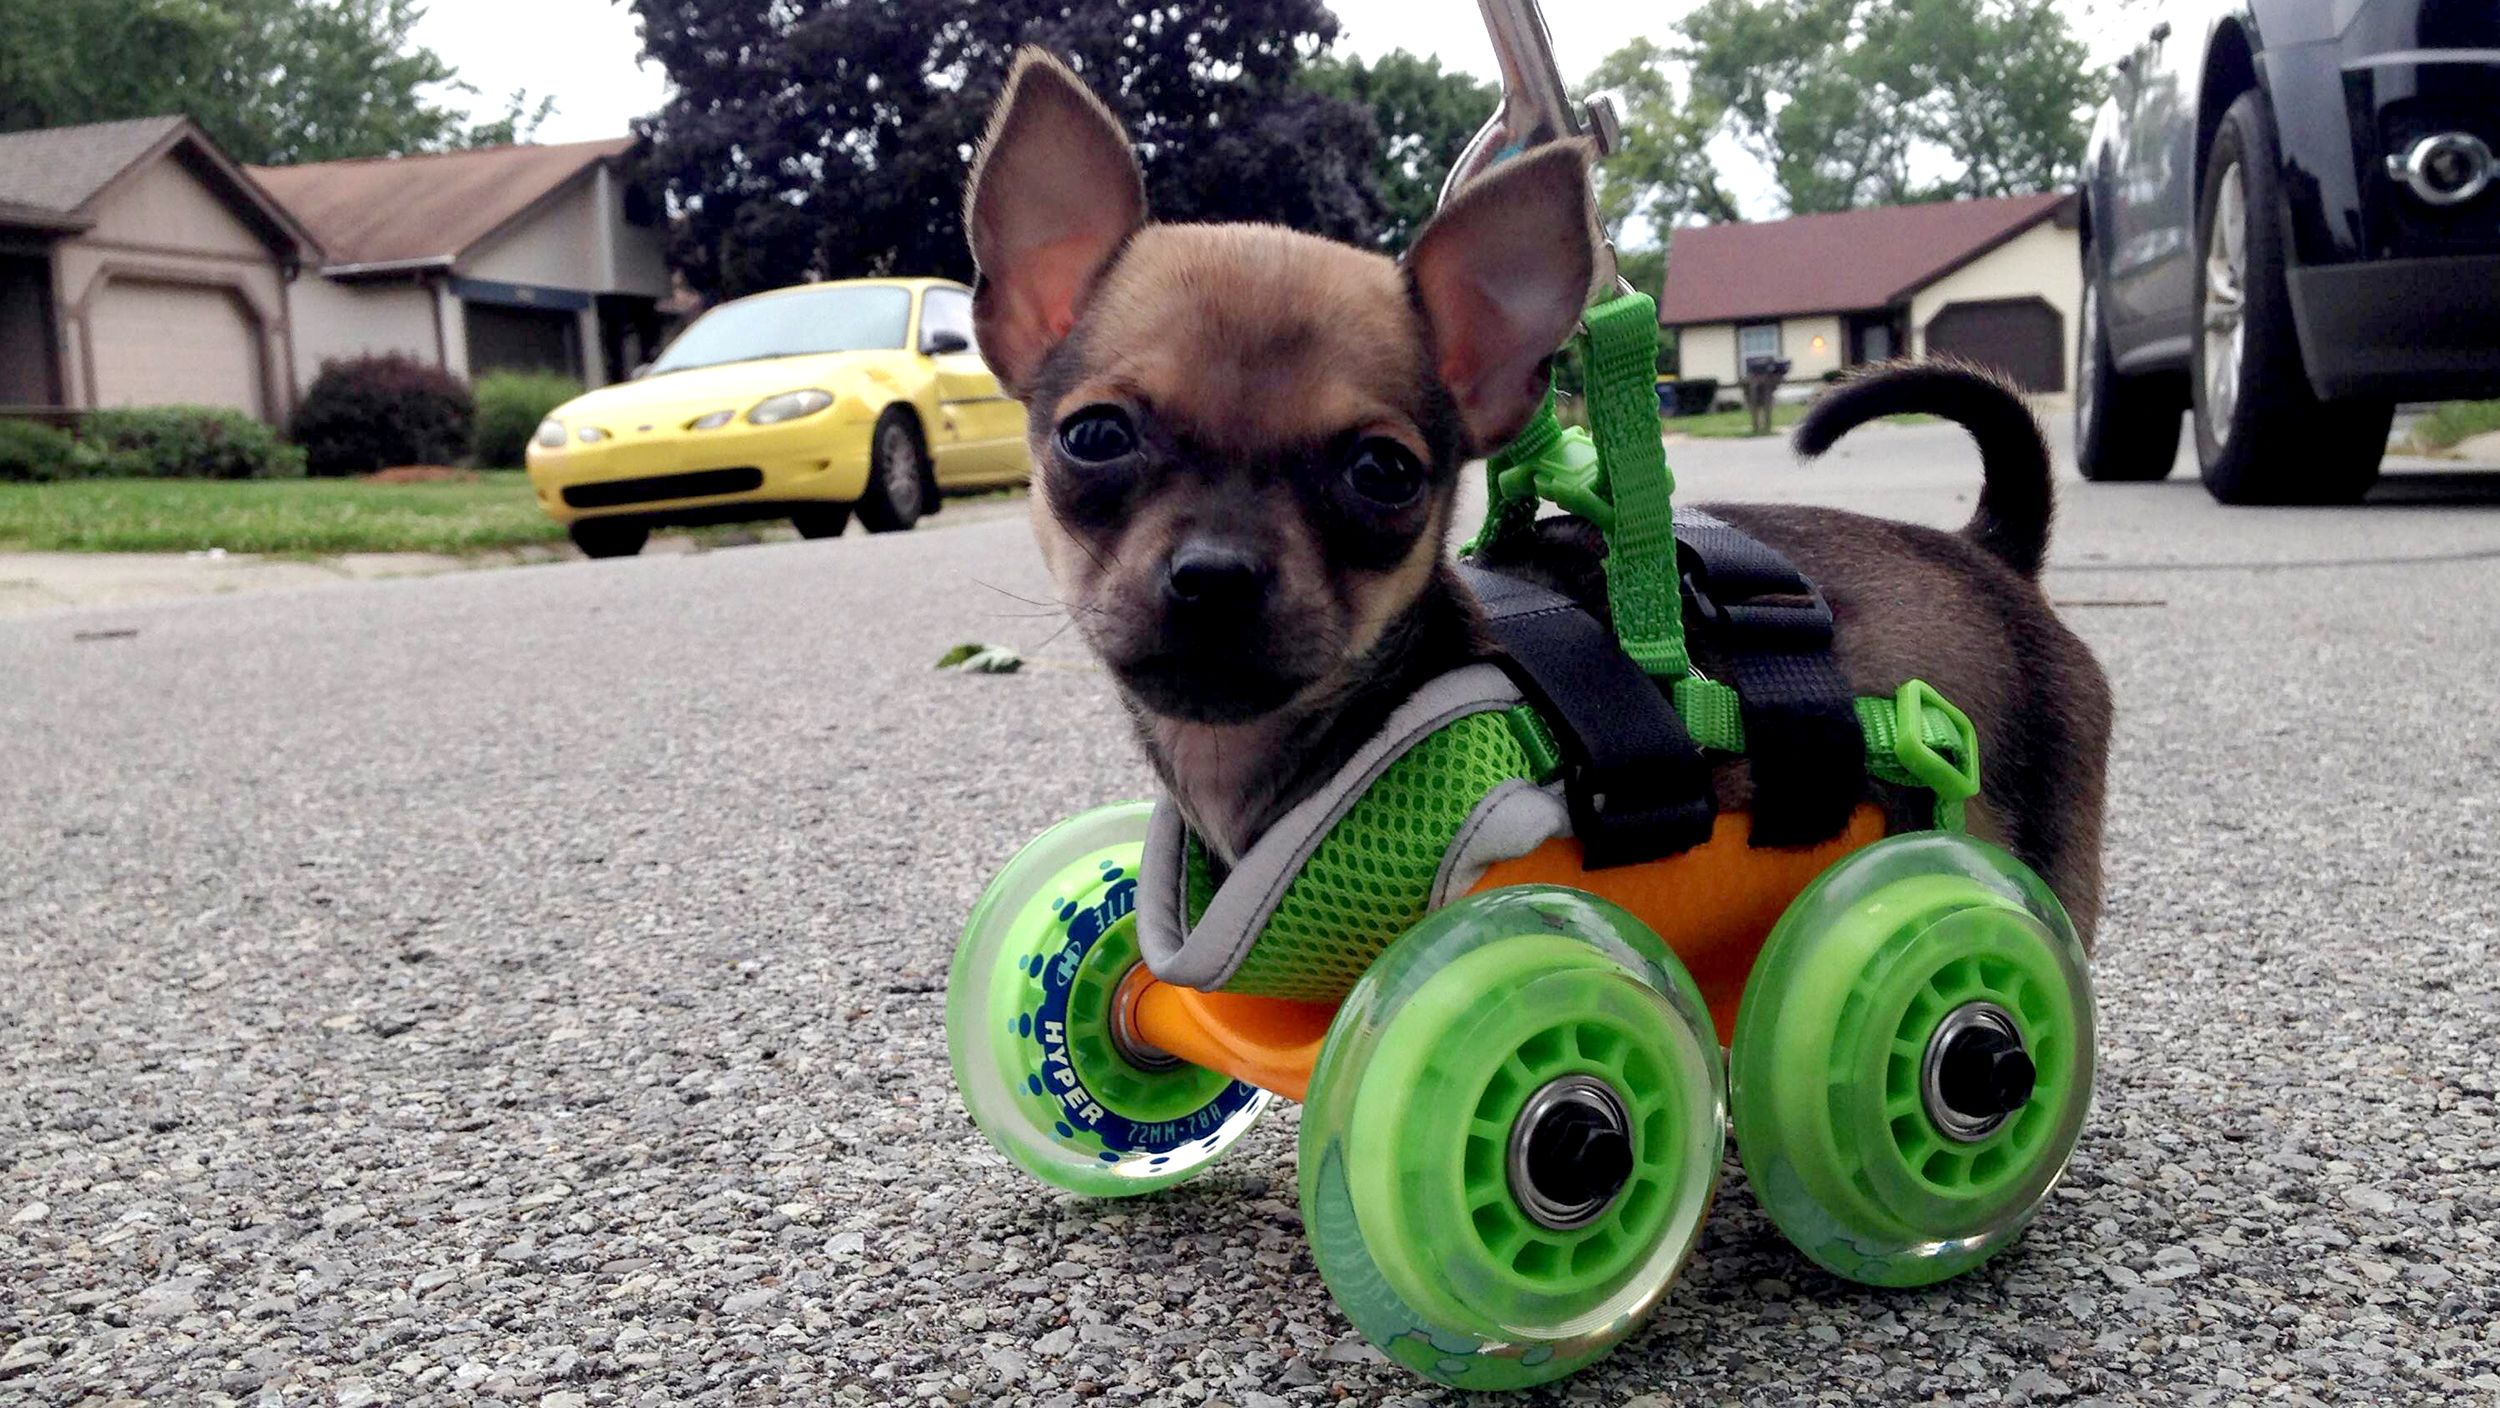 3D printing helps disabled Chihuahua get rolling with new